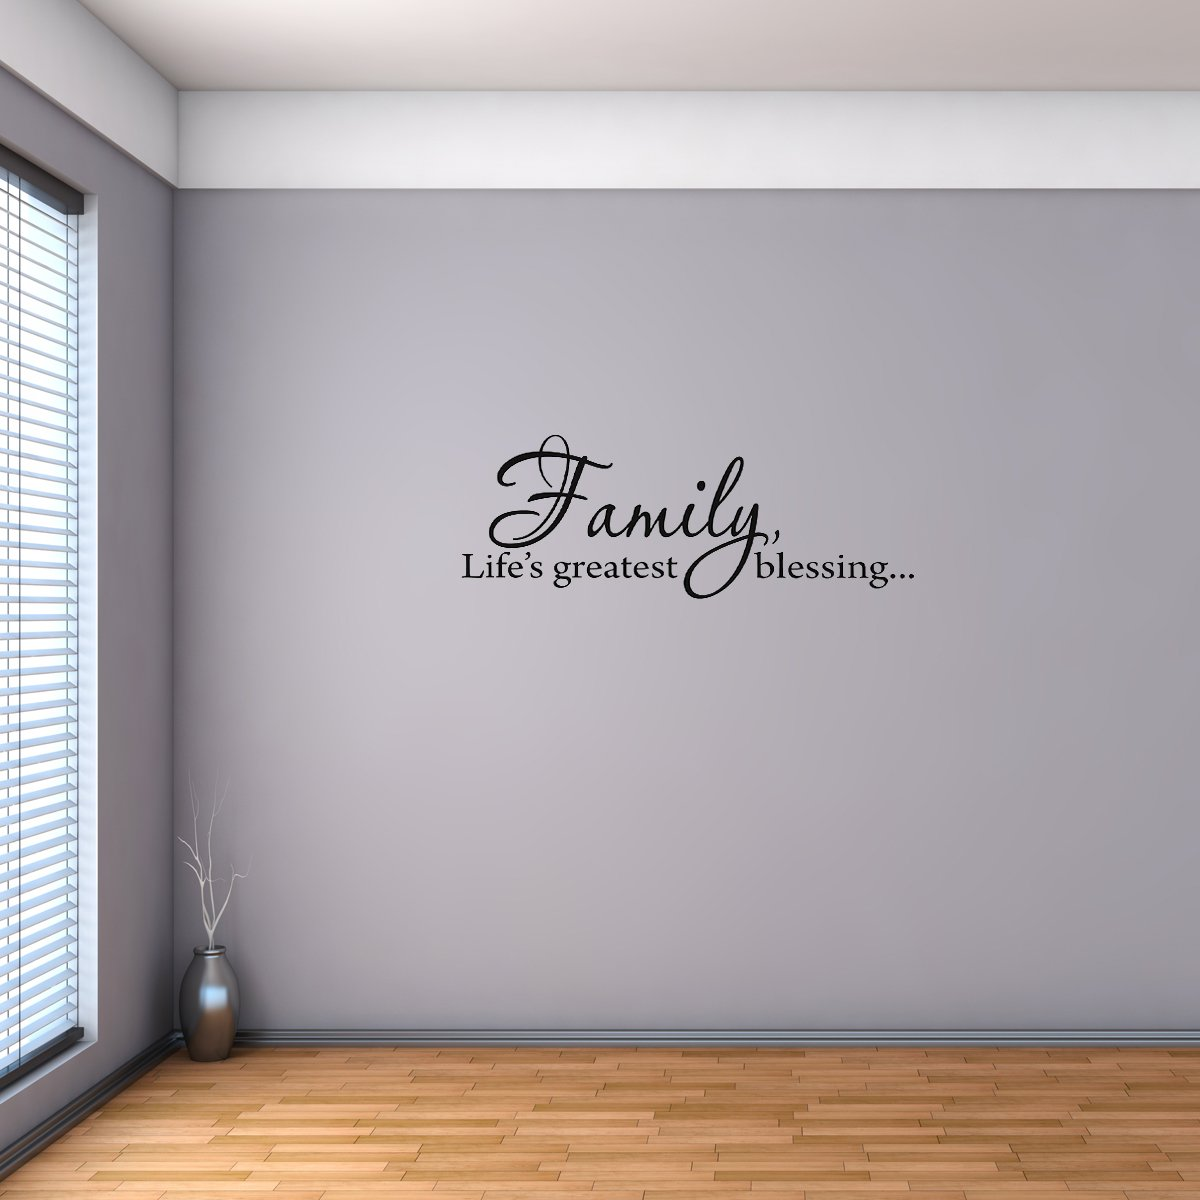 com family life s greatest blessing family wall quotes decal